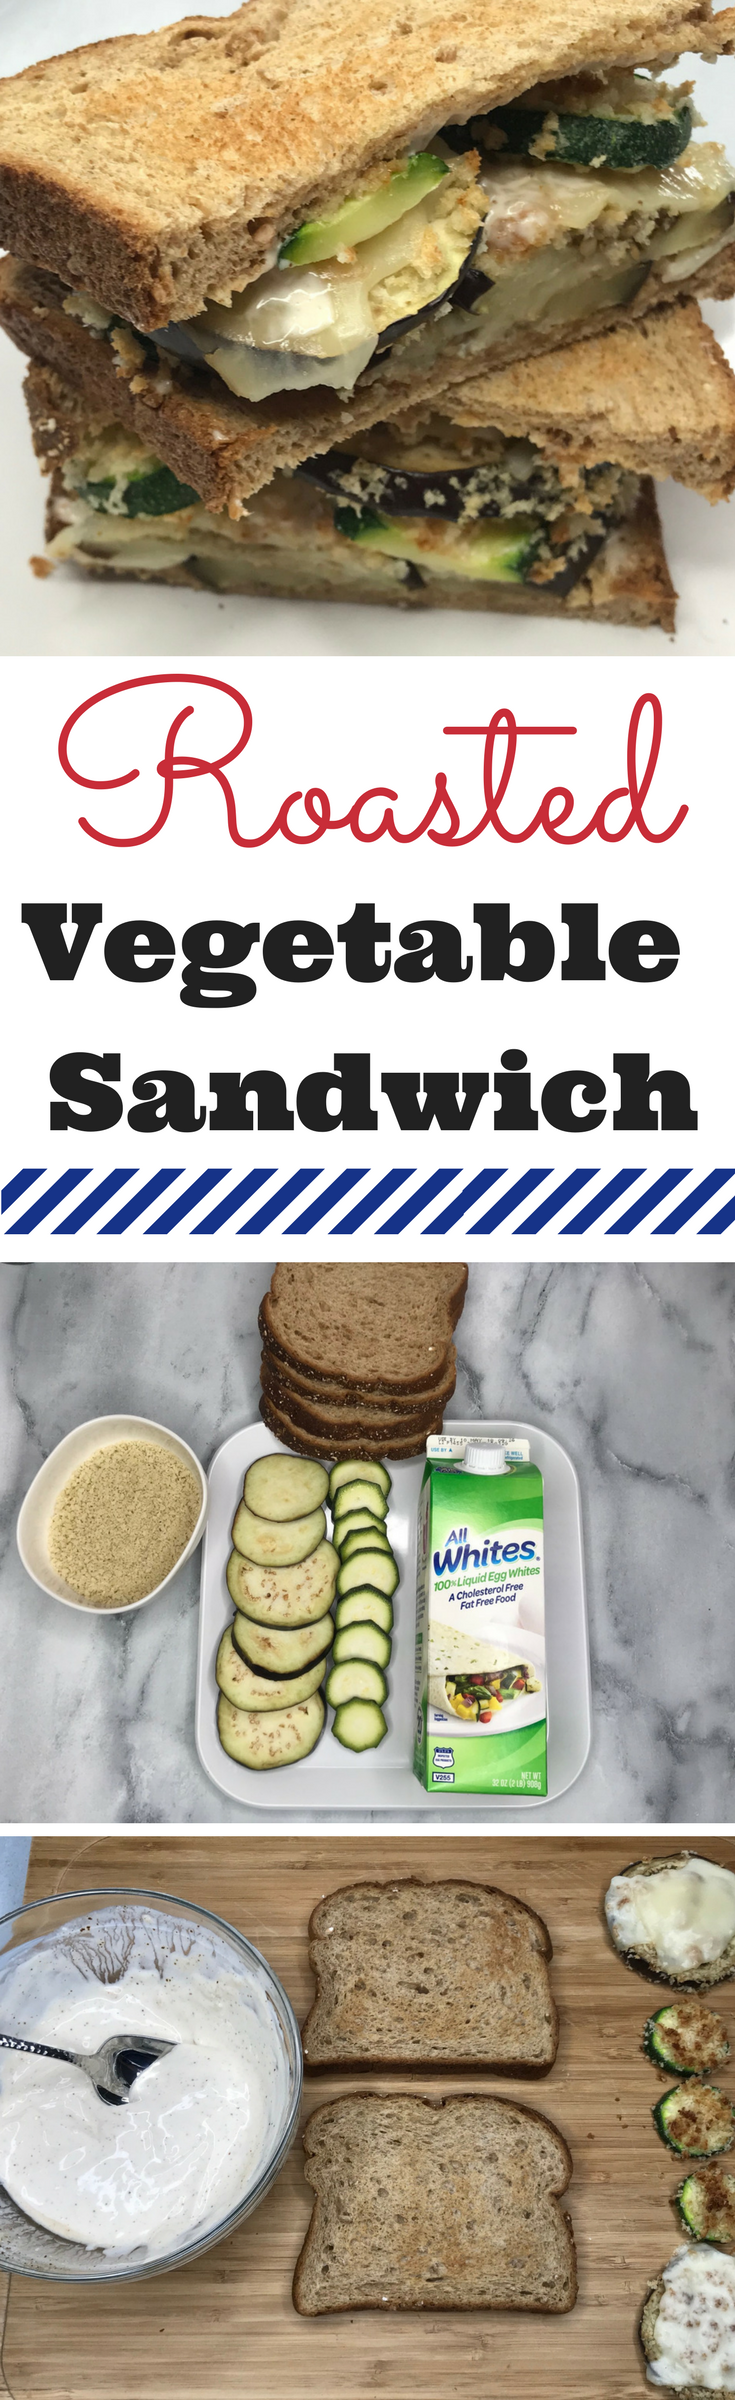 This easy roasted vegetable sandwich is a secret high protein source recipe because of the egg whites! It's the perfect lunch recipe and healthy. #Ad #AllWhitesEggs